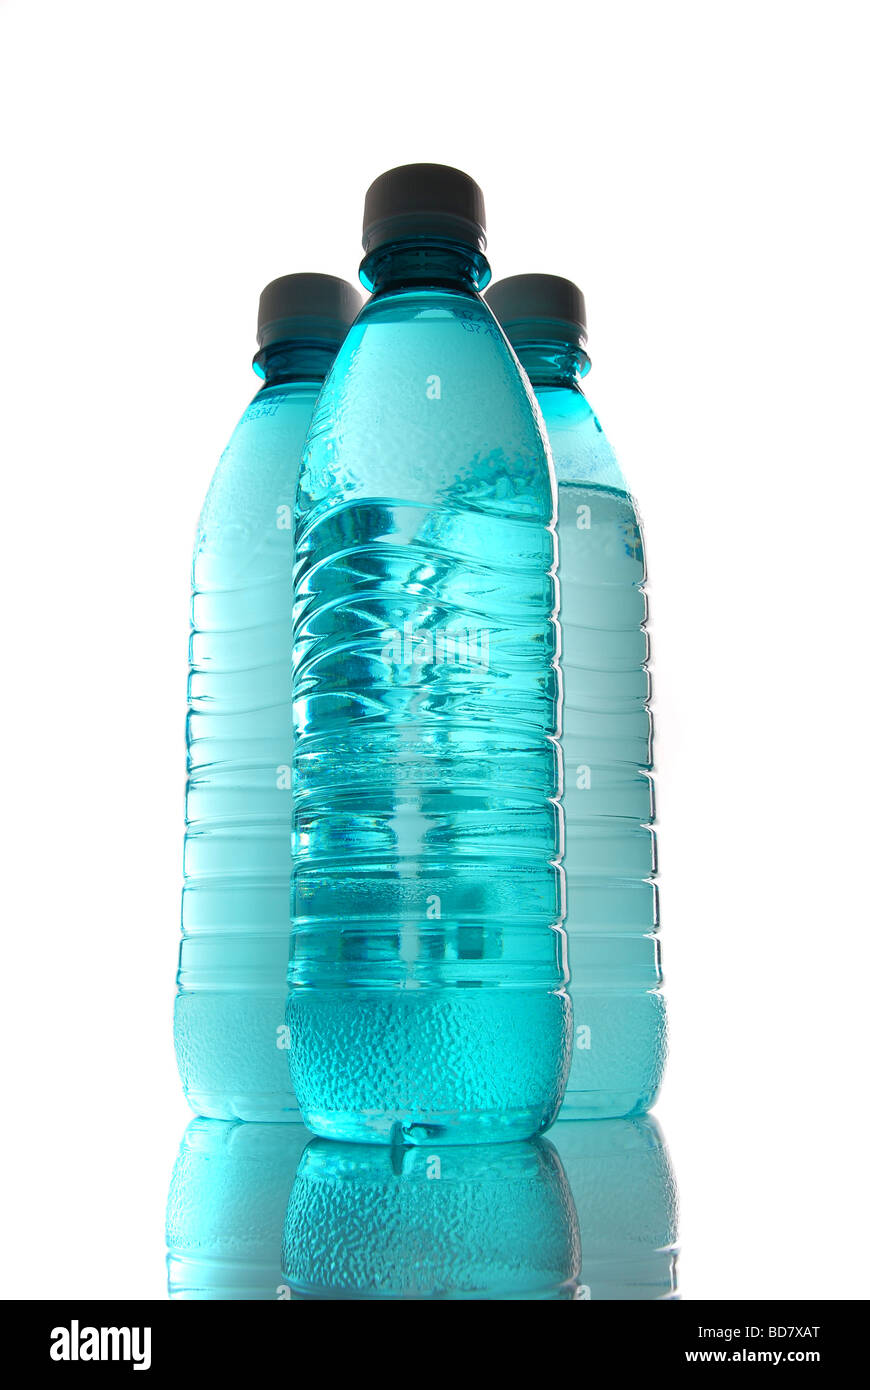 Plastic bottle of mineral water - Stock Image